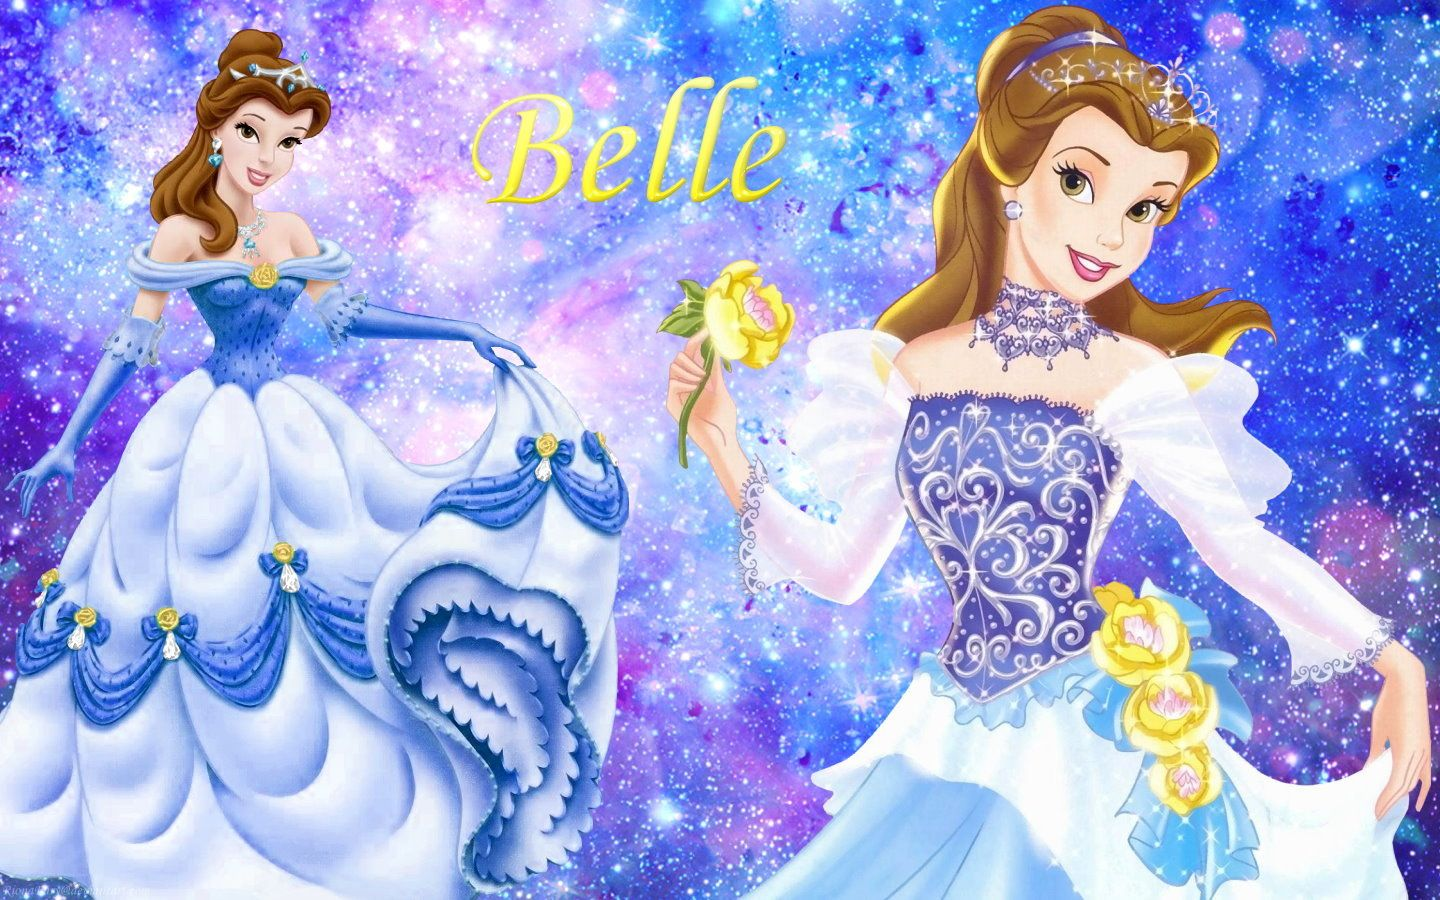 Beauty And The Beast Wallpaper Belle Disney Princess Wallpaper Disney Princess Belle Princess Wallpaper